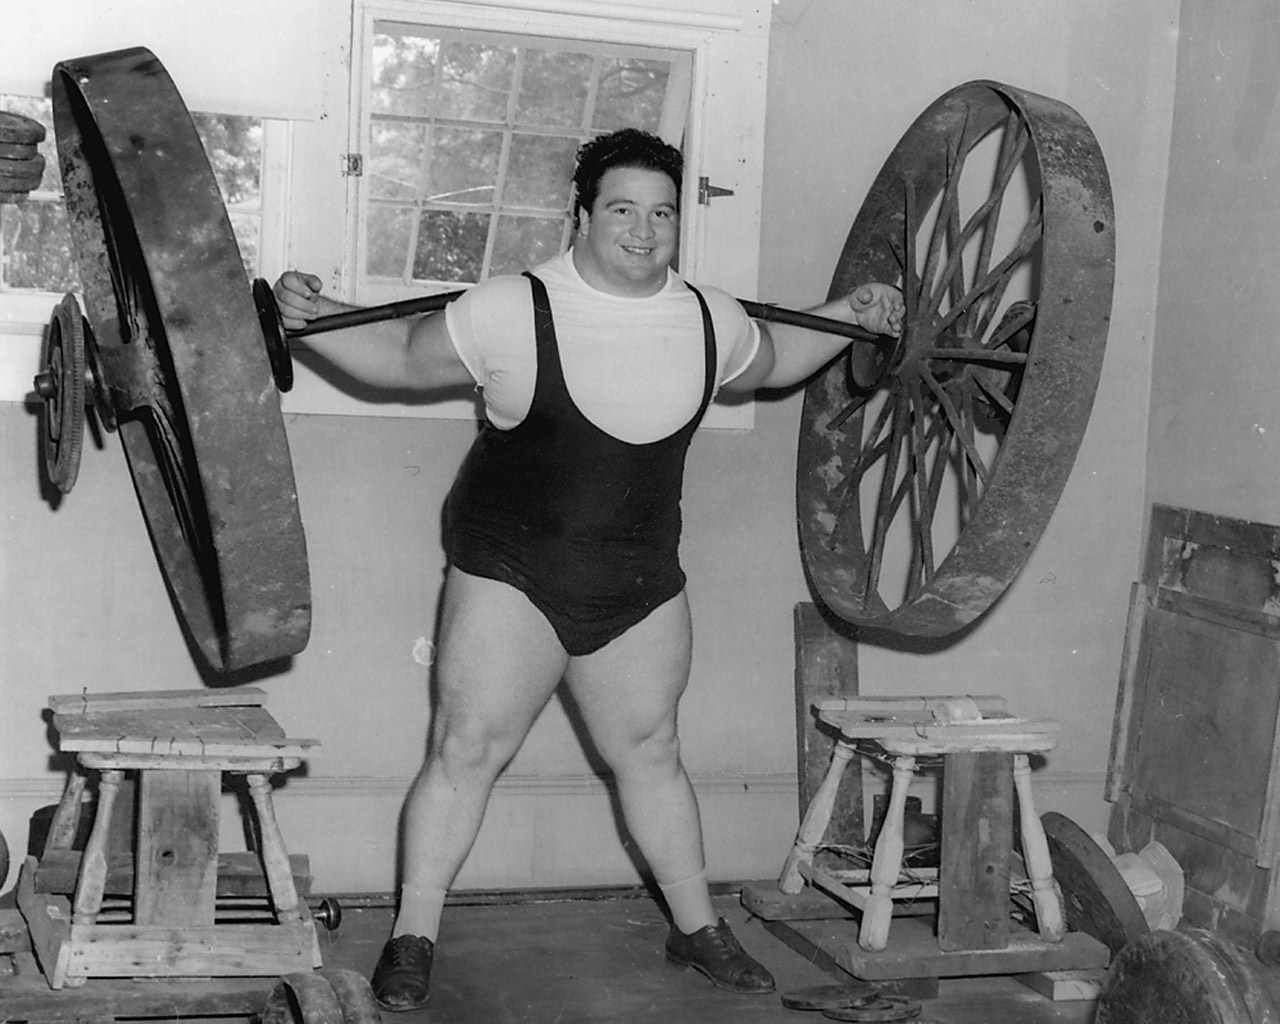 paul anderson lifting wagon wheels strongman strongmen weightlifter weightlifting